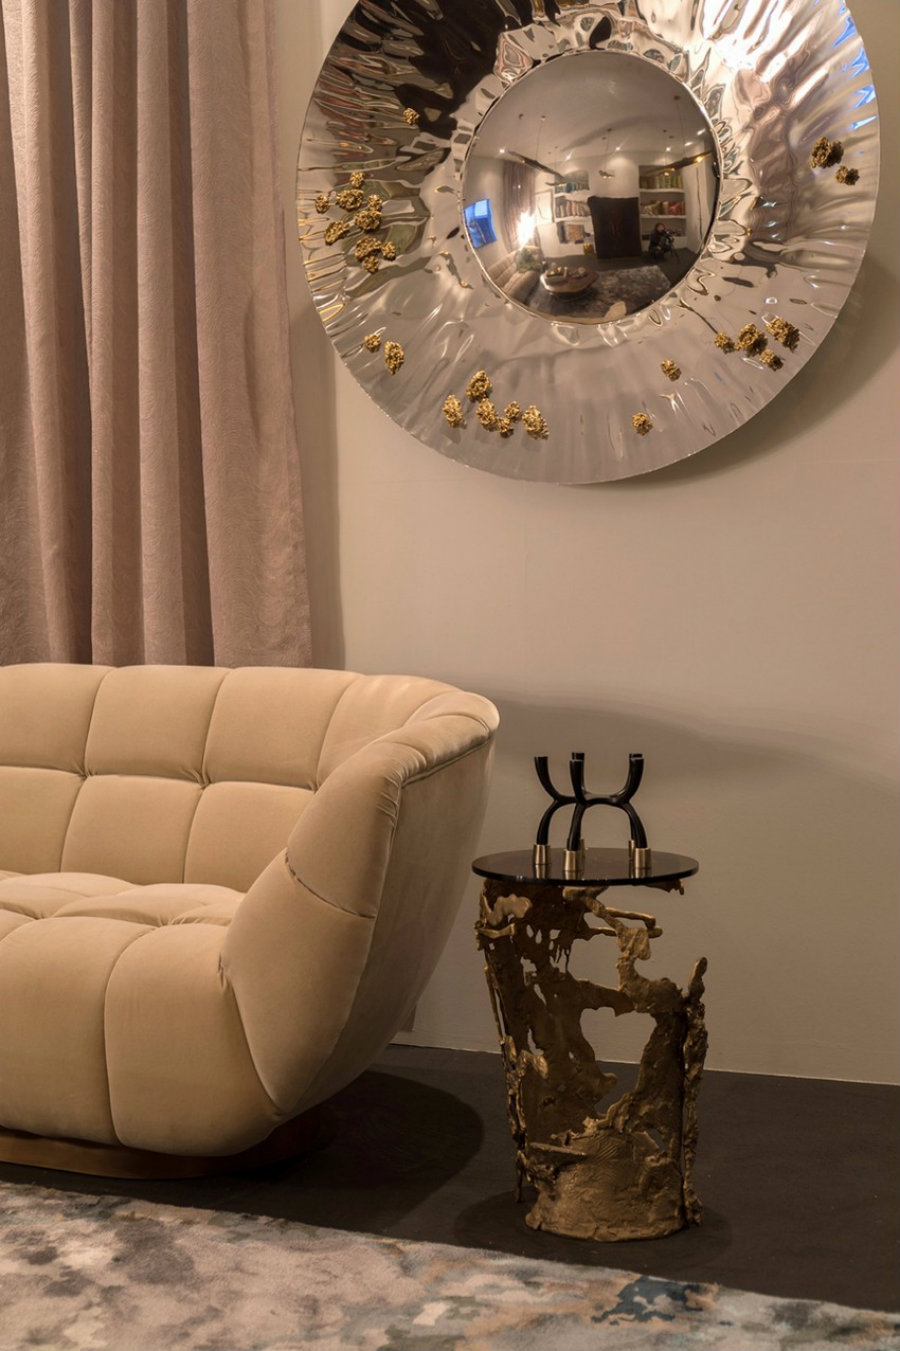 MAISON ET OBJET : A LOOK INTO SOME OF THE NEW PIECES maison et objet MAISON ET OBJET : A LOOK INTO SOME OF THE NEW PIECES saya mirror